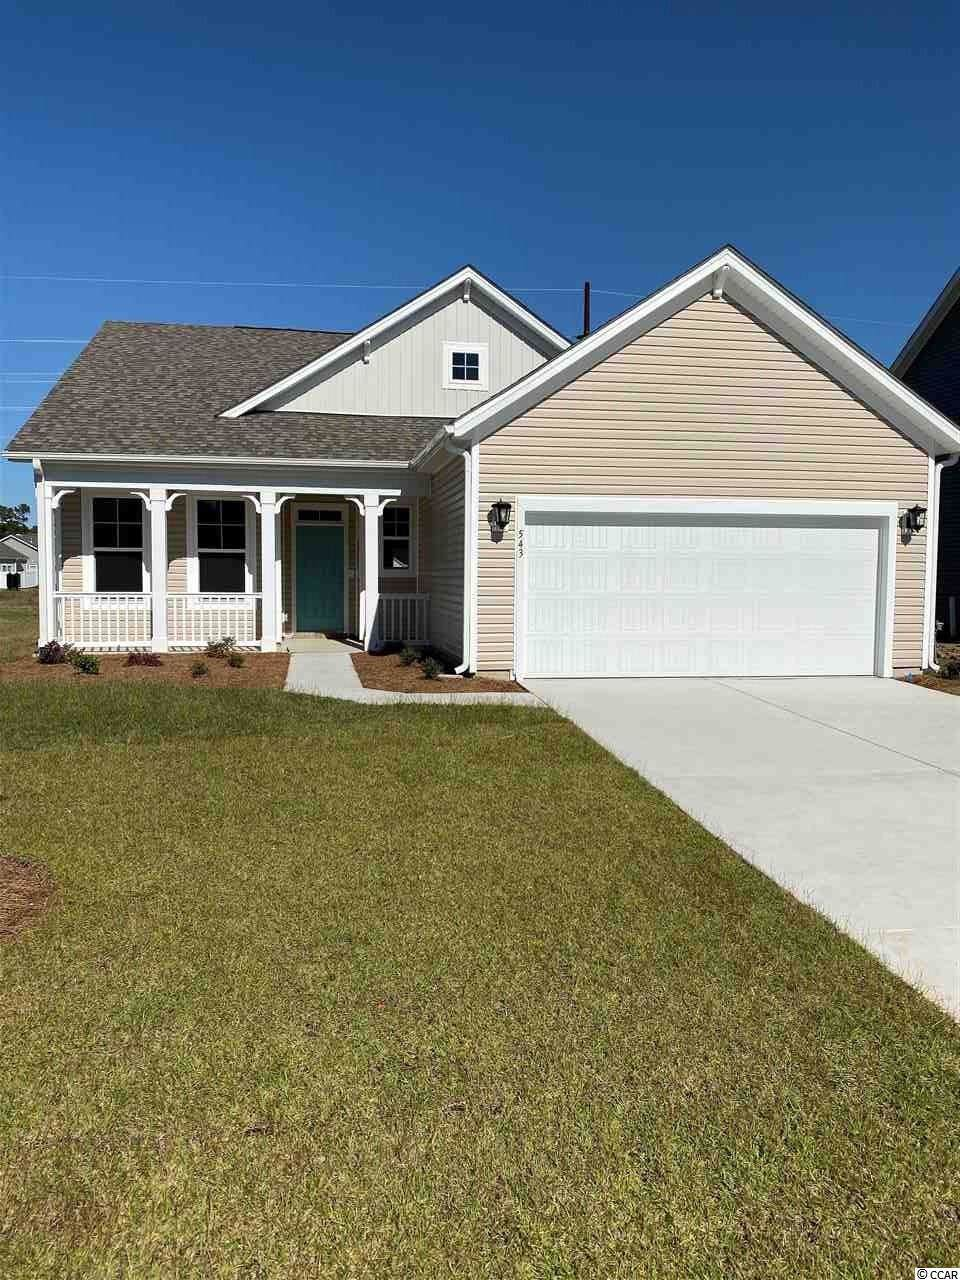 543 Oyster Dr. - Photo 1